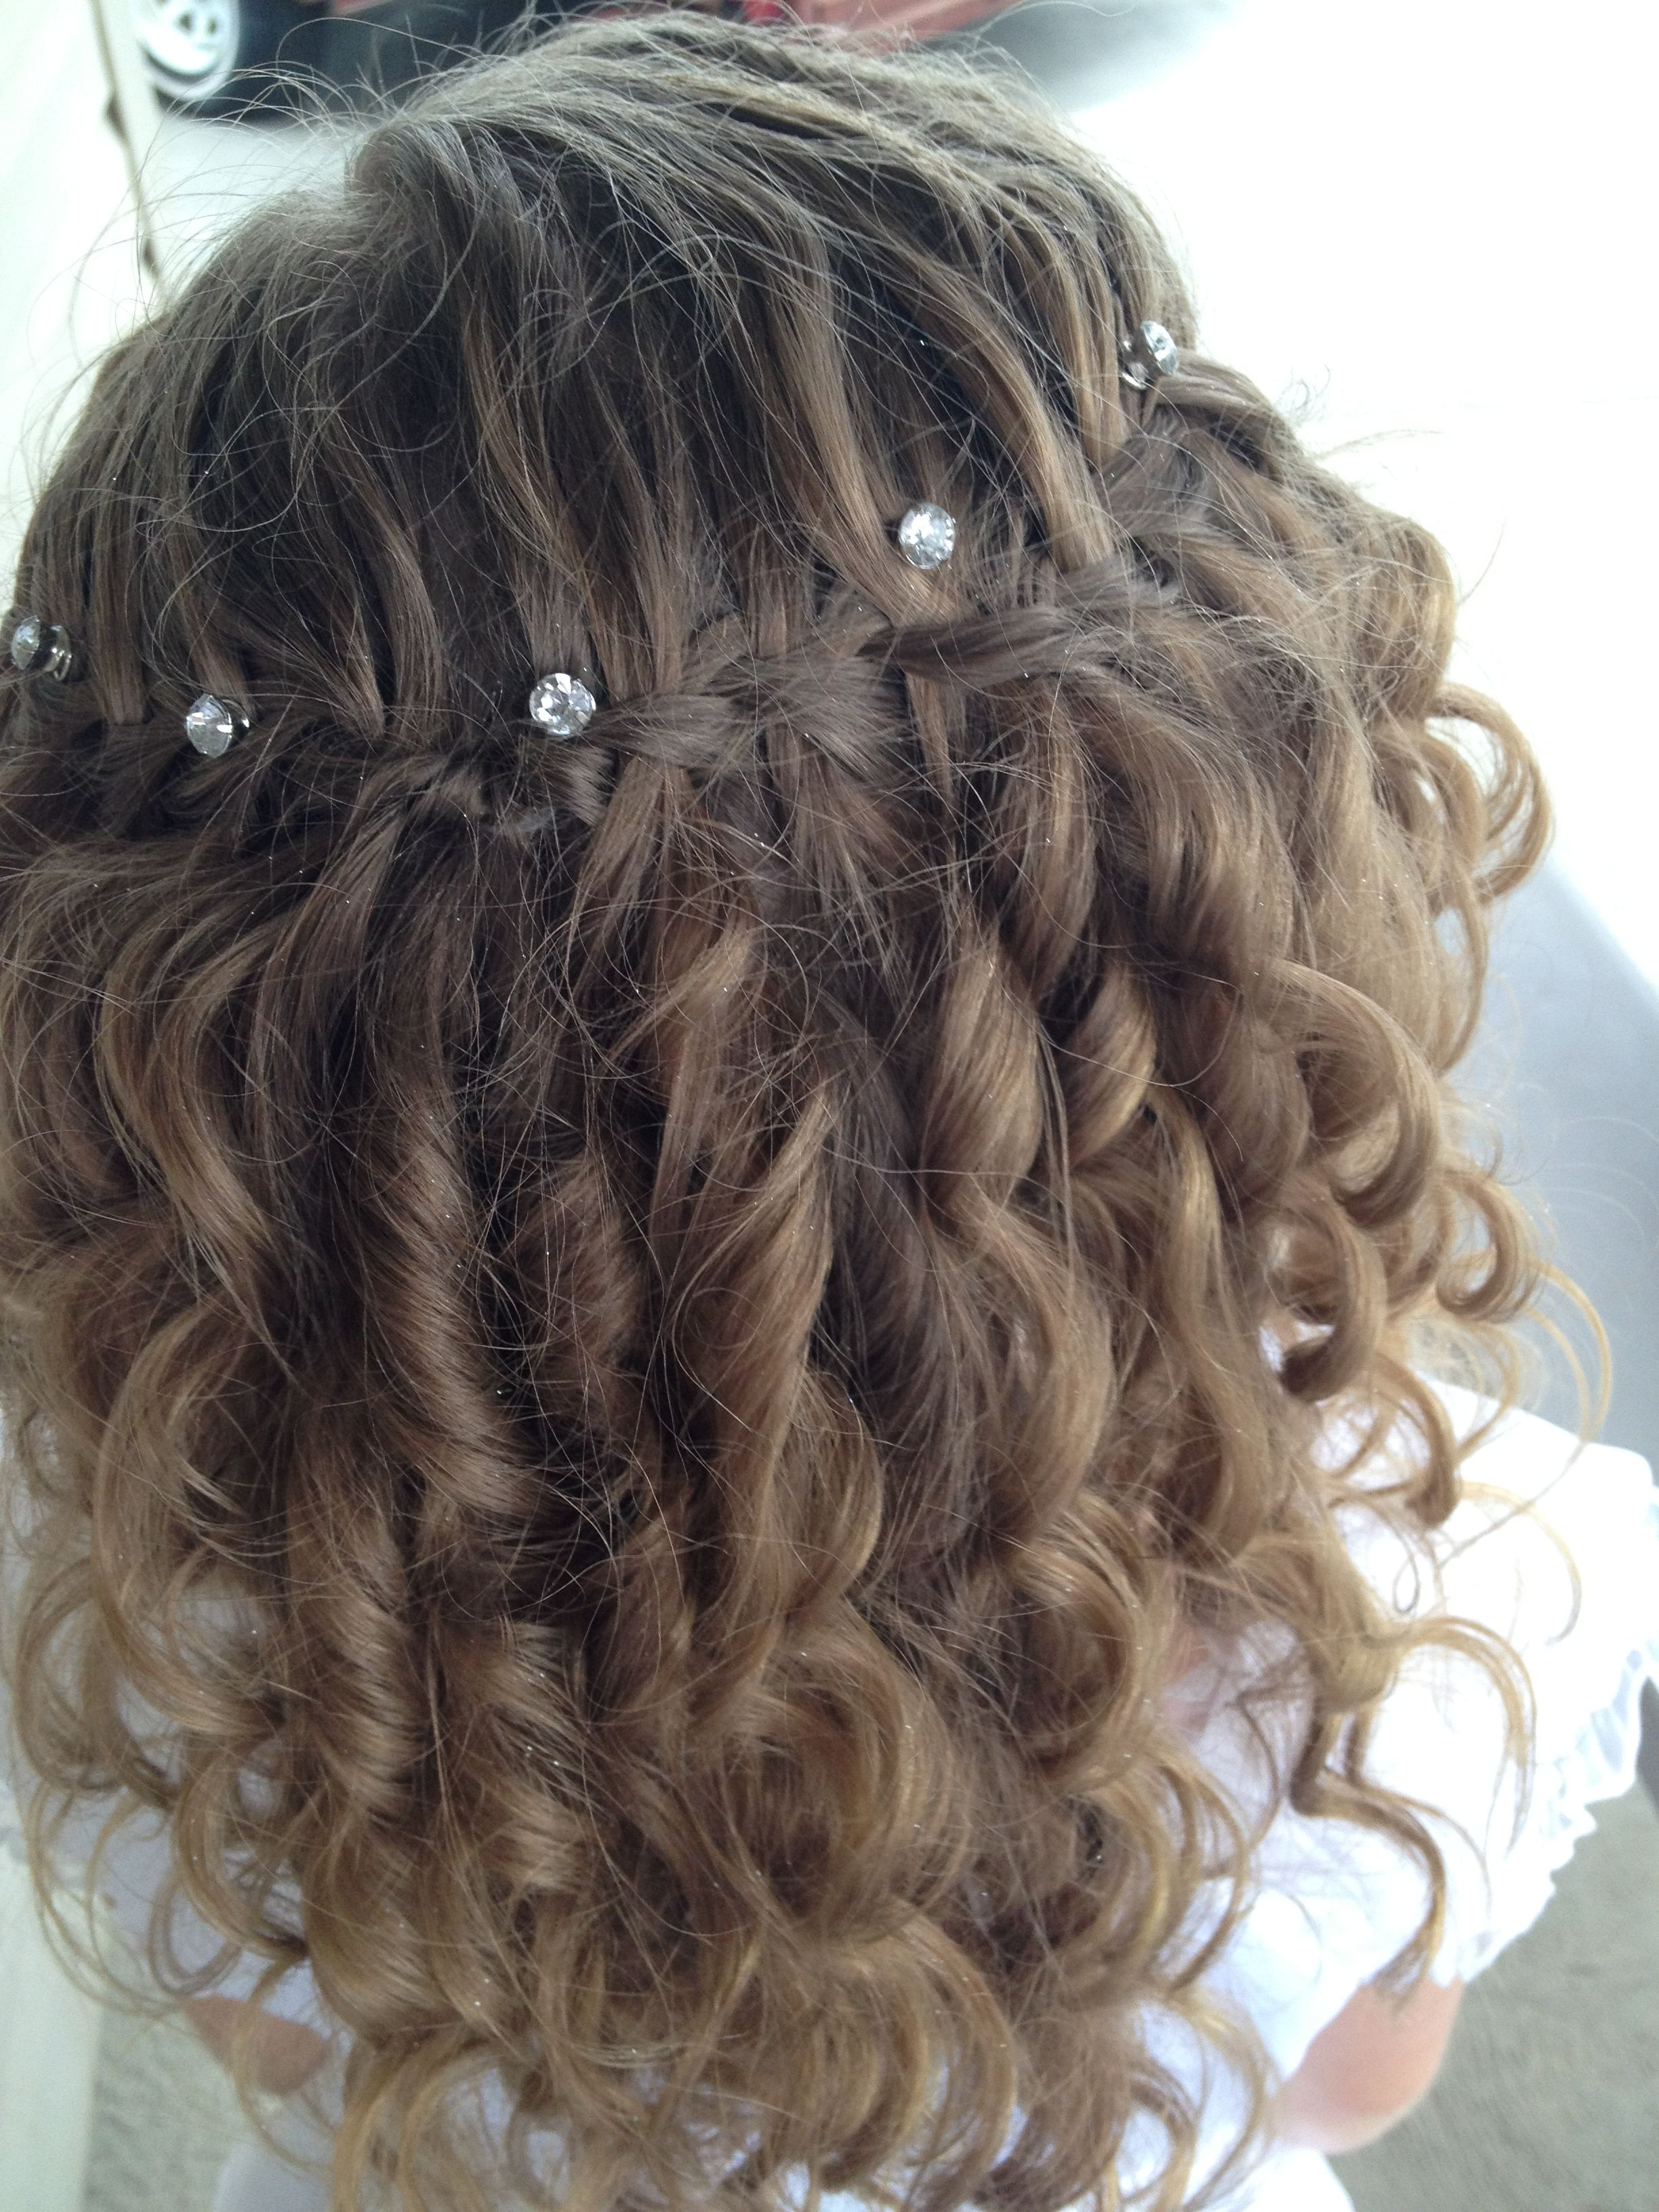 Flower Girl Hairstyle Curlformer Curls With A Waterfall